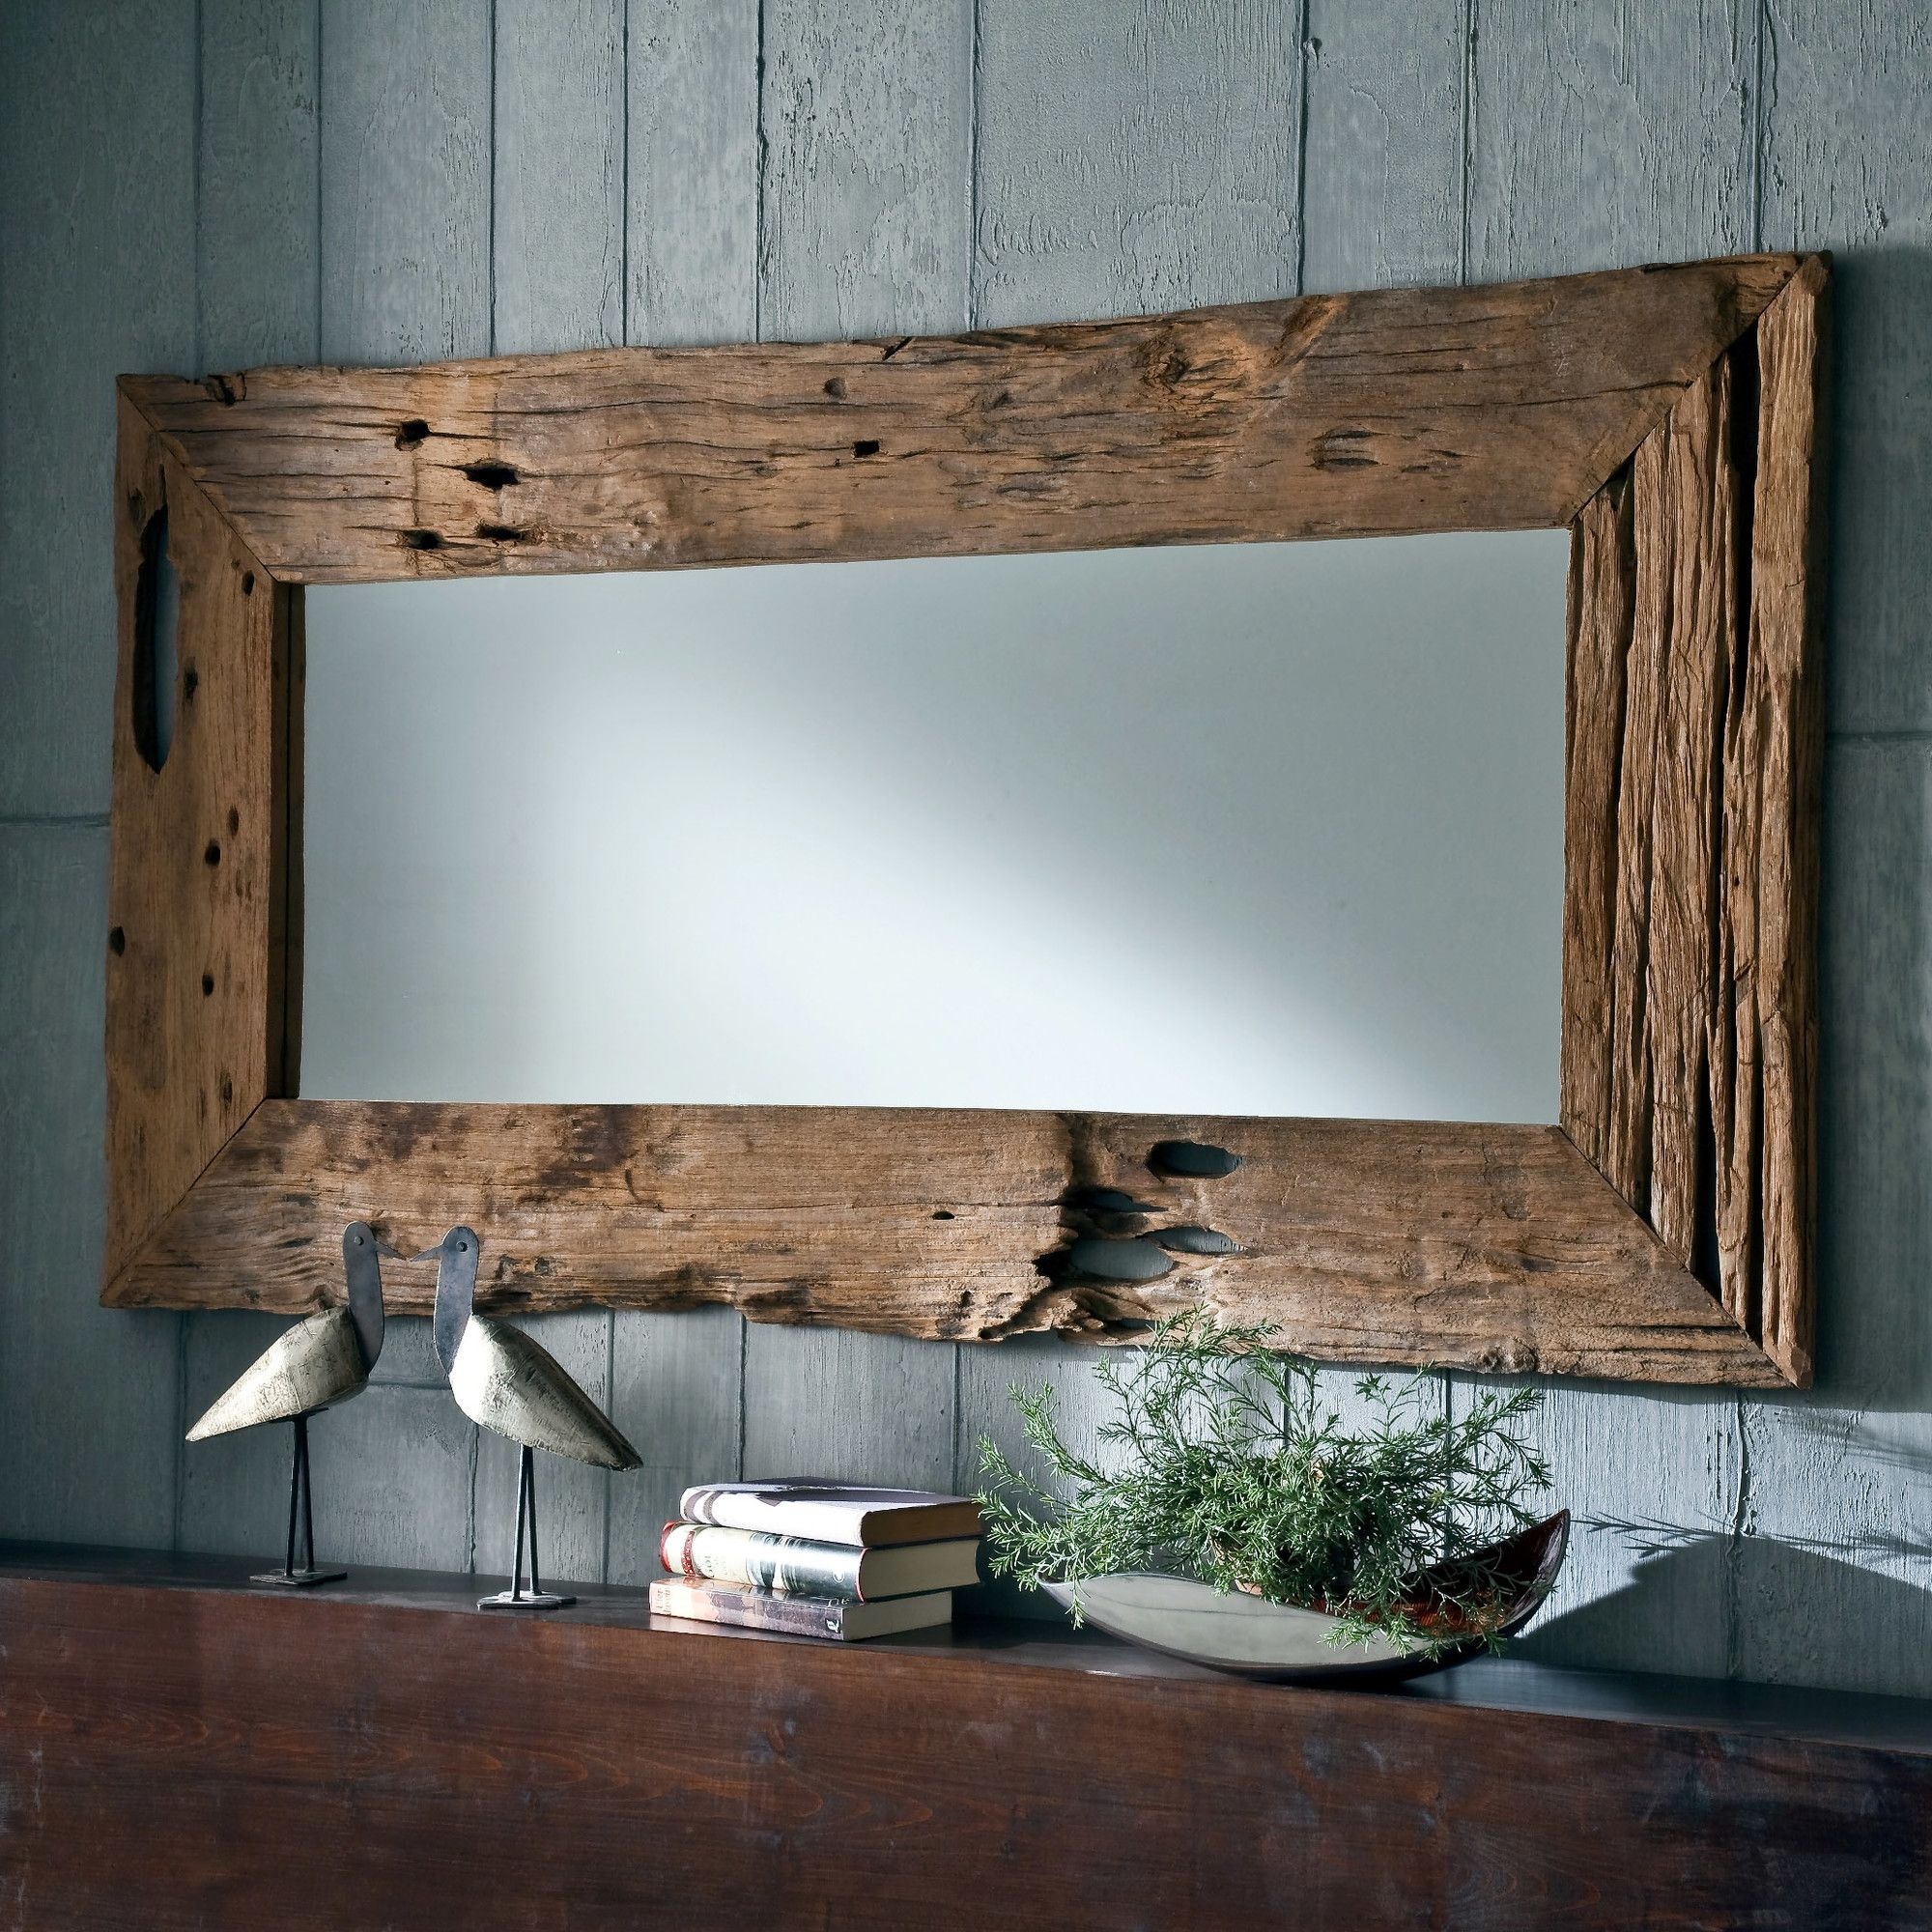 Designer Wandspiegel Henke Collection Wall Mirror | Rustic House, Home Decor, Decor